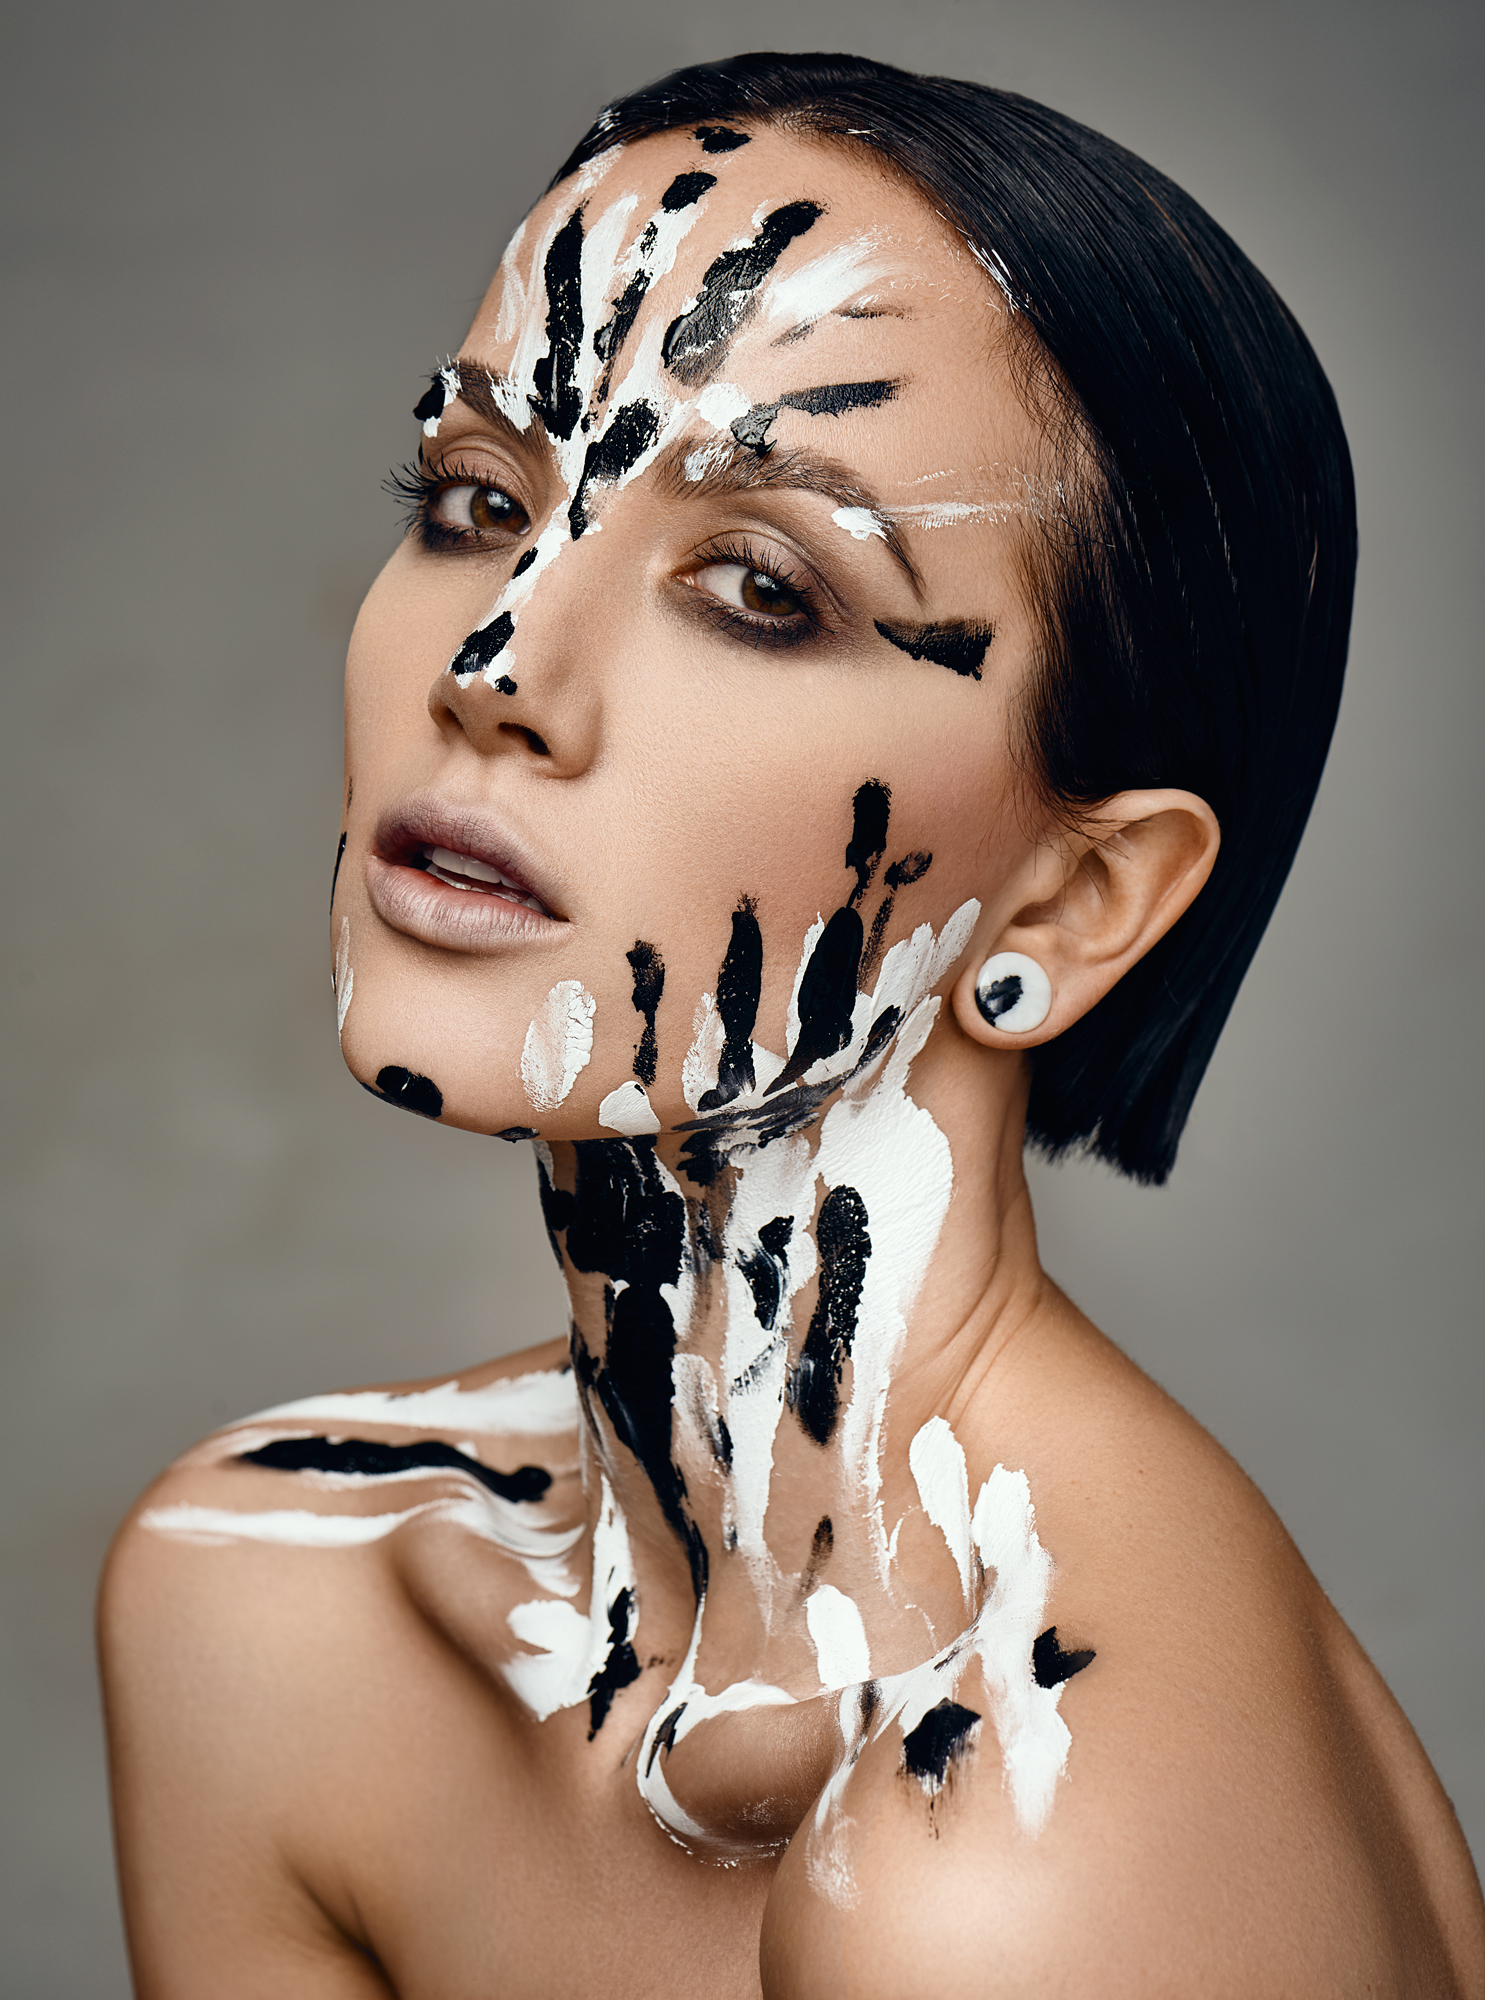 Patricia fotograf christian grüner tribal make-up black white beauty